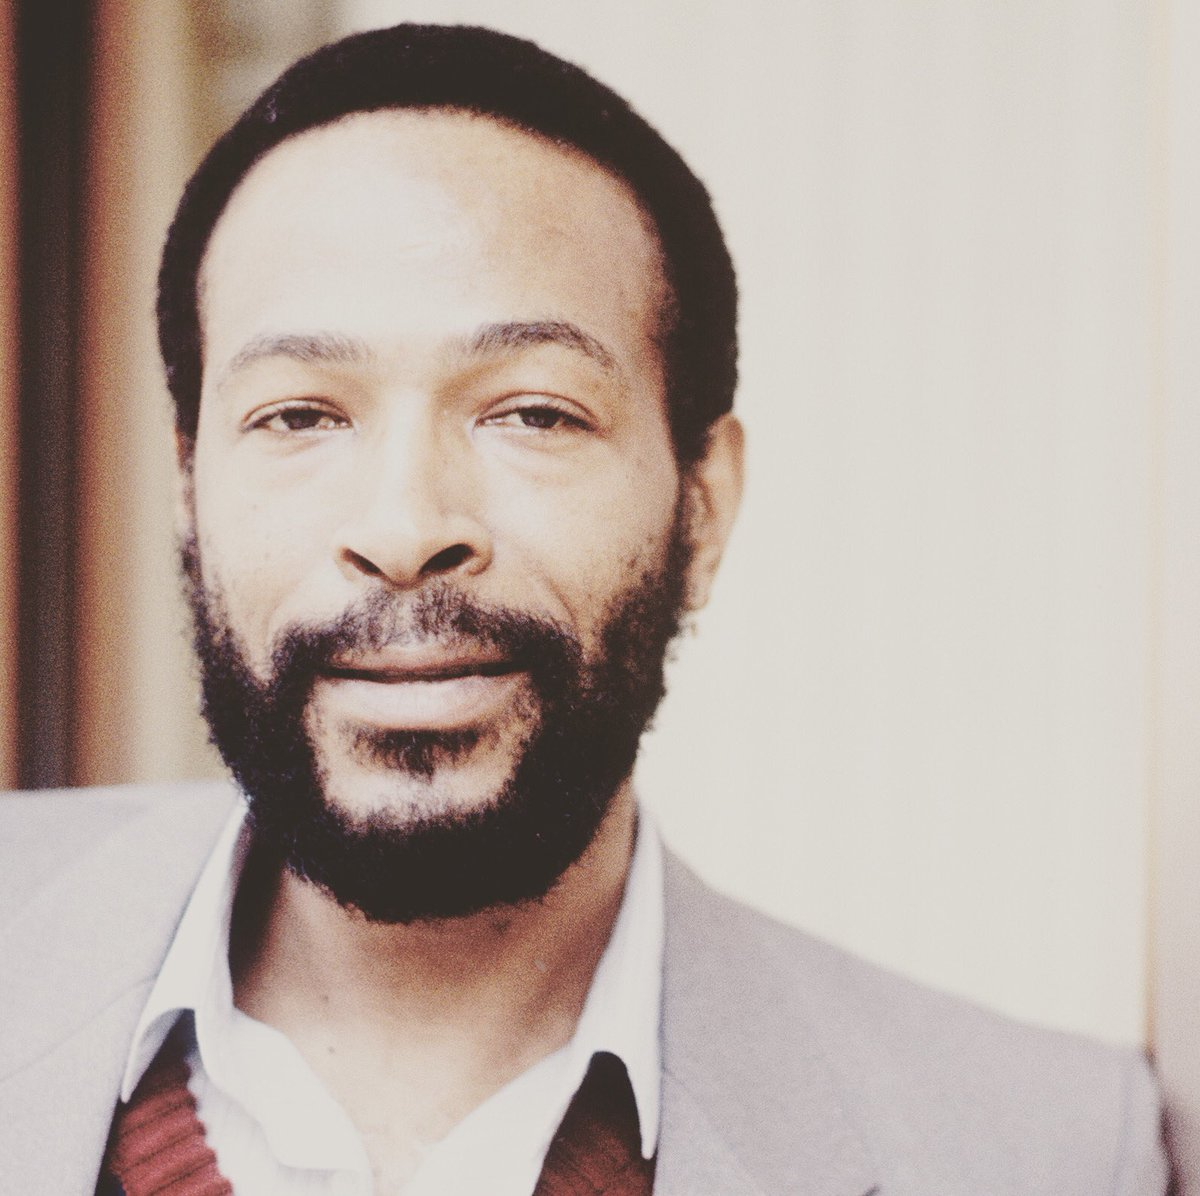 Stop, Look, Listen: 81 years ago today, #MarvinGaye was born at Howard University Hospital. The wisdom in his love songs spans generations.  Mercy mercy me, I heard it through the grapevine that distant lovers are the best kind right now. #socialdistancing